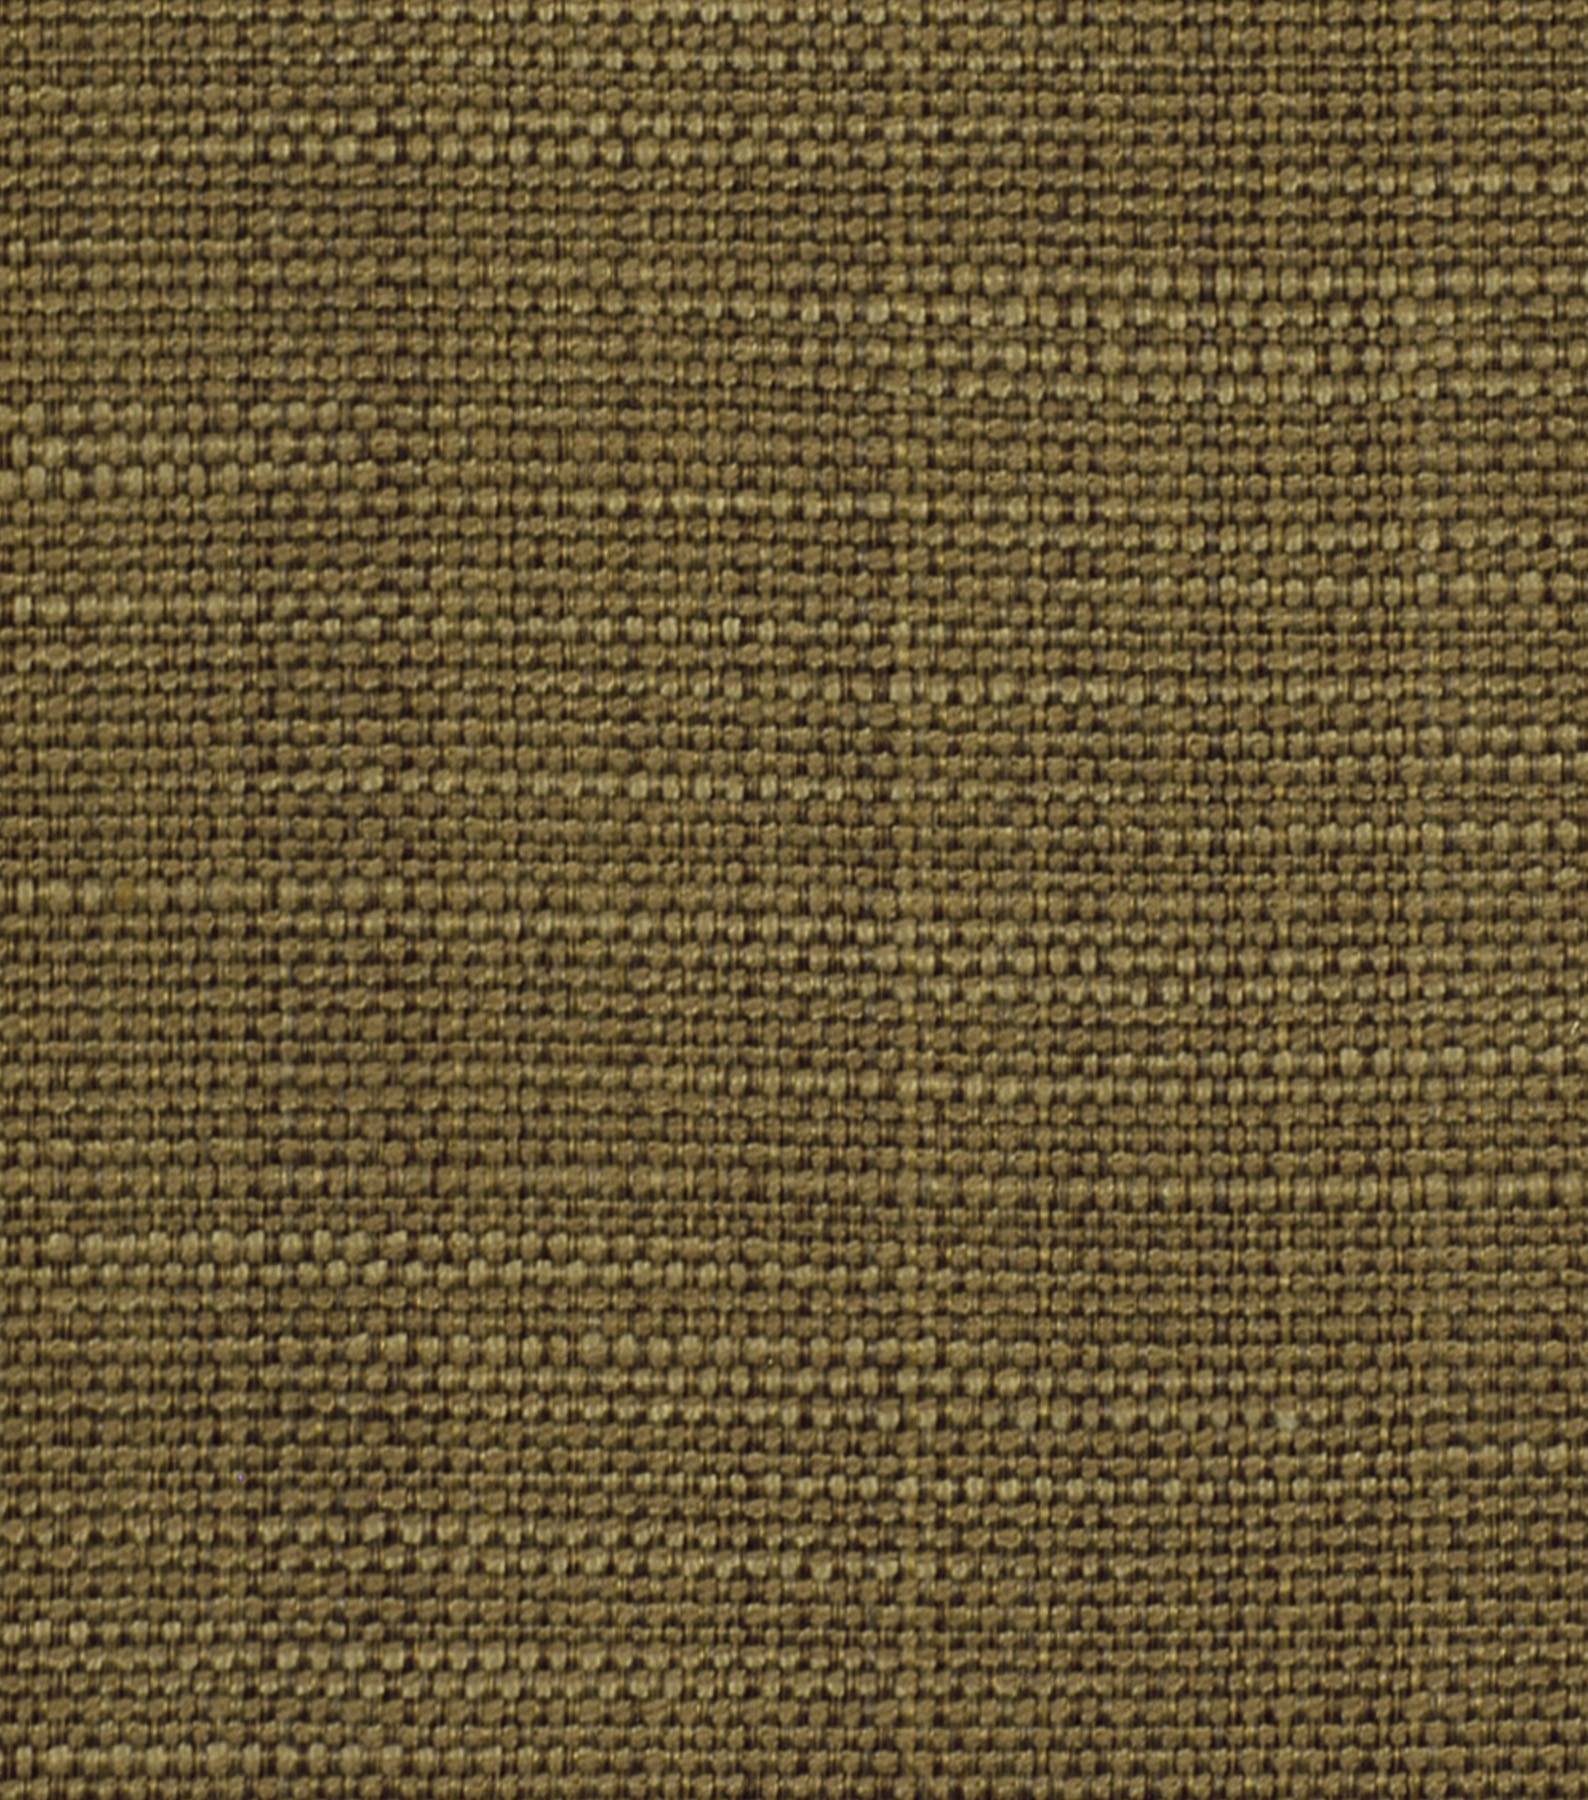 Home Decor 8\u0022x8\u0022 Fabric Swatch-Signature Series Texturetake Desert Beige